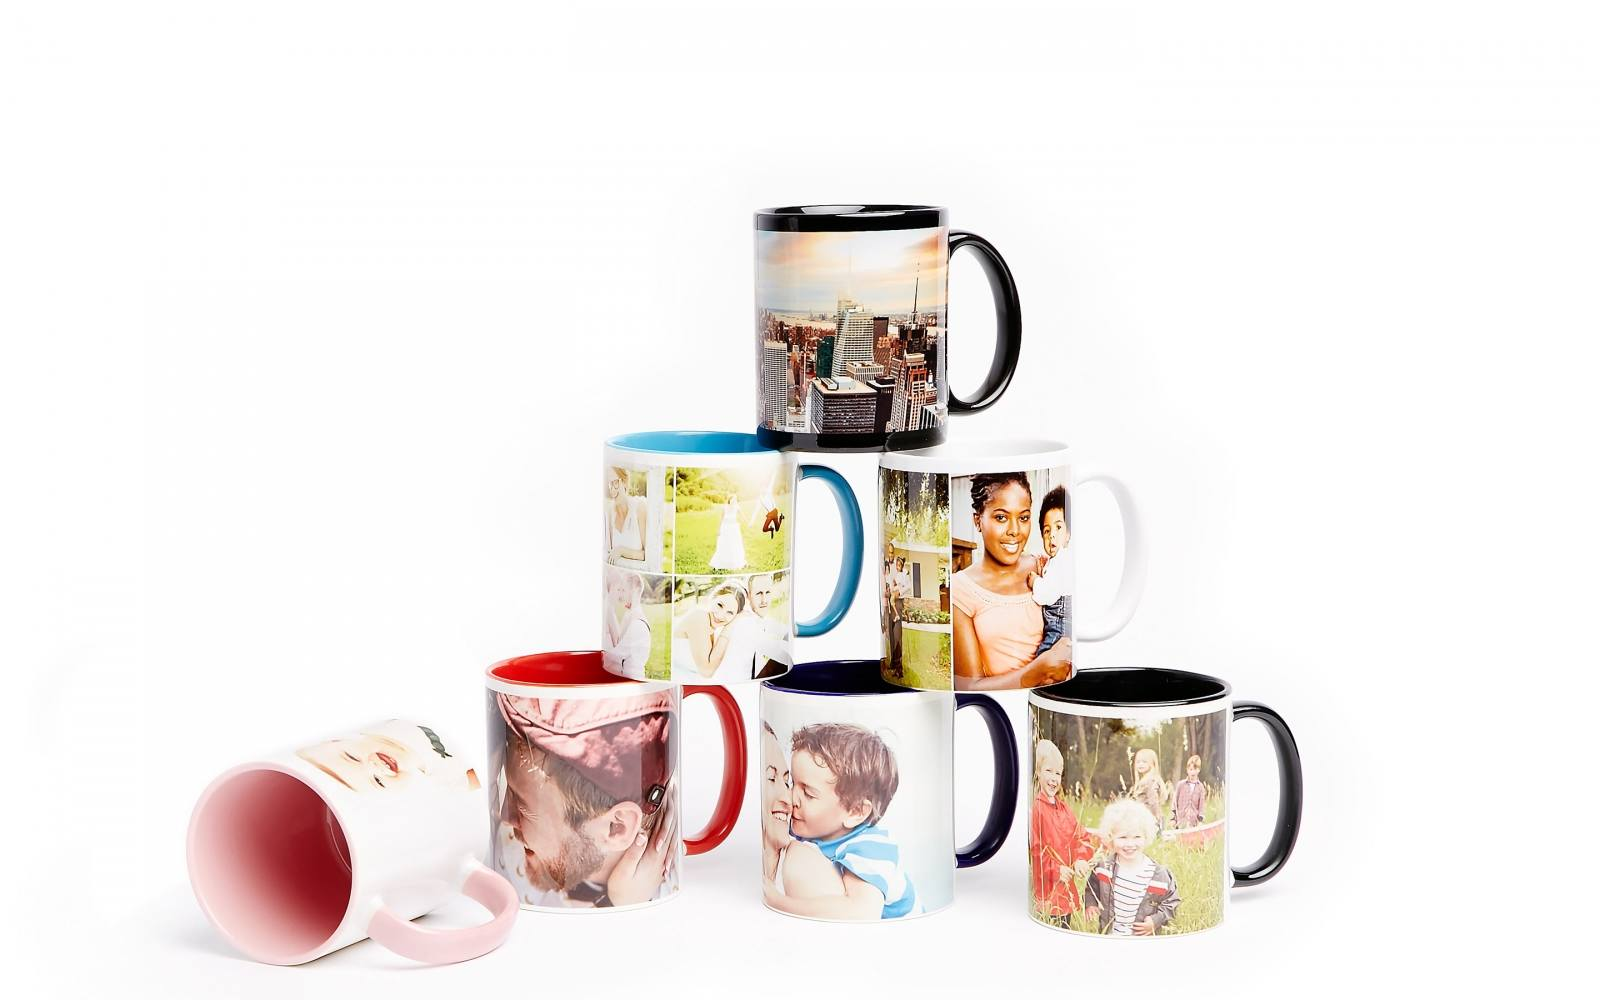 Digital photos on mugs